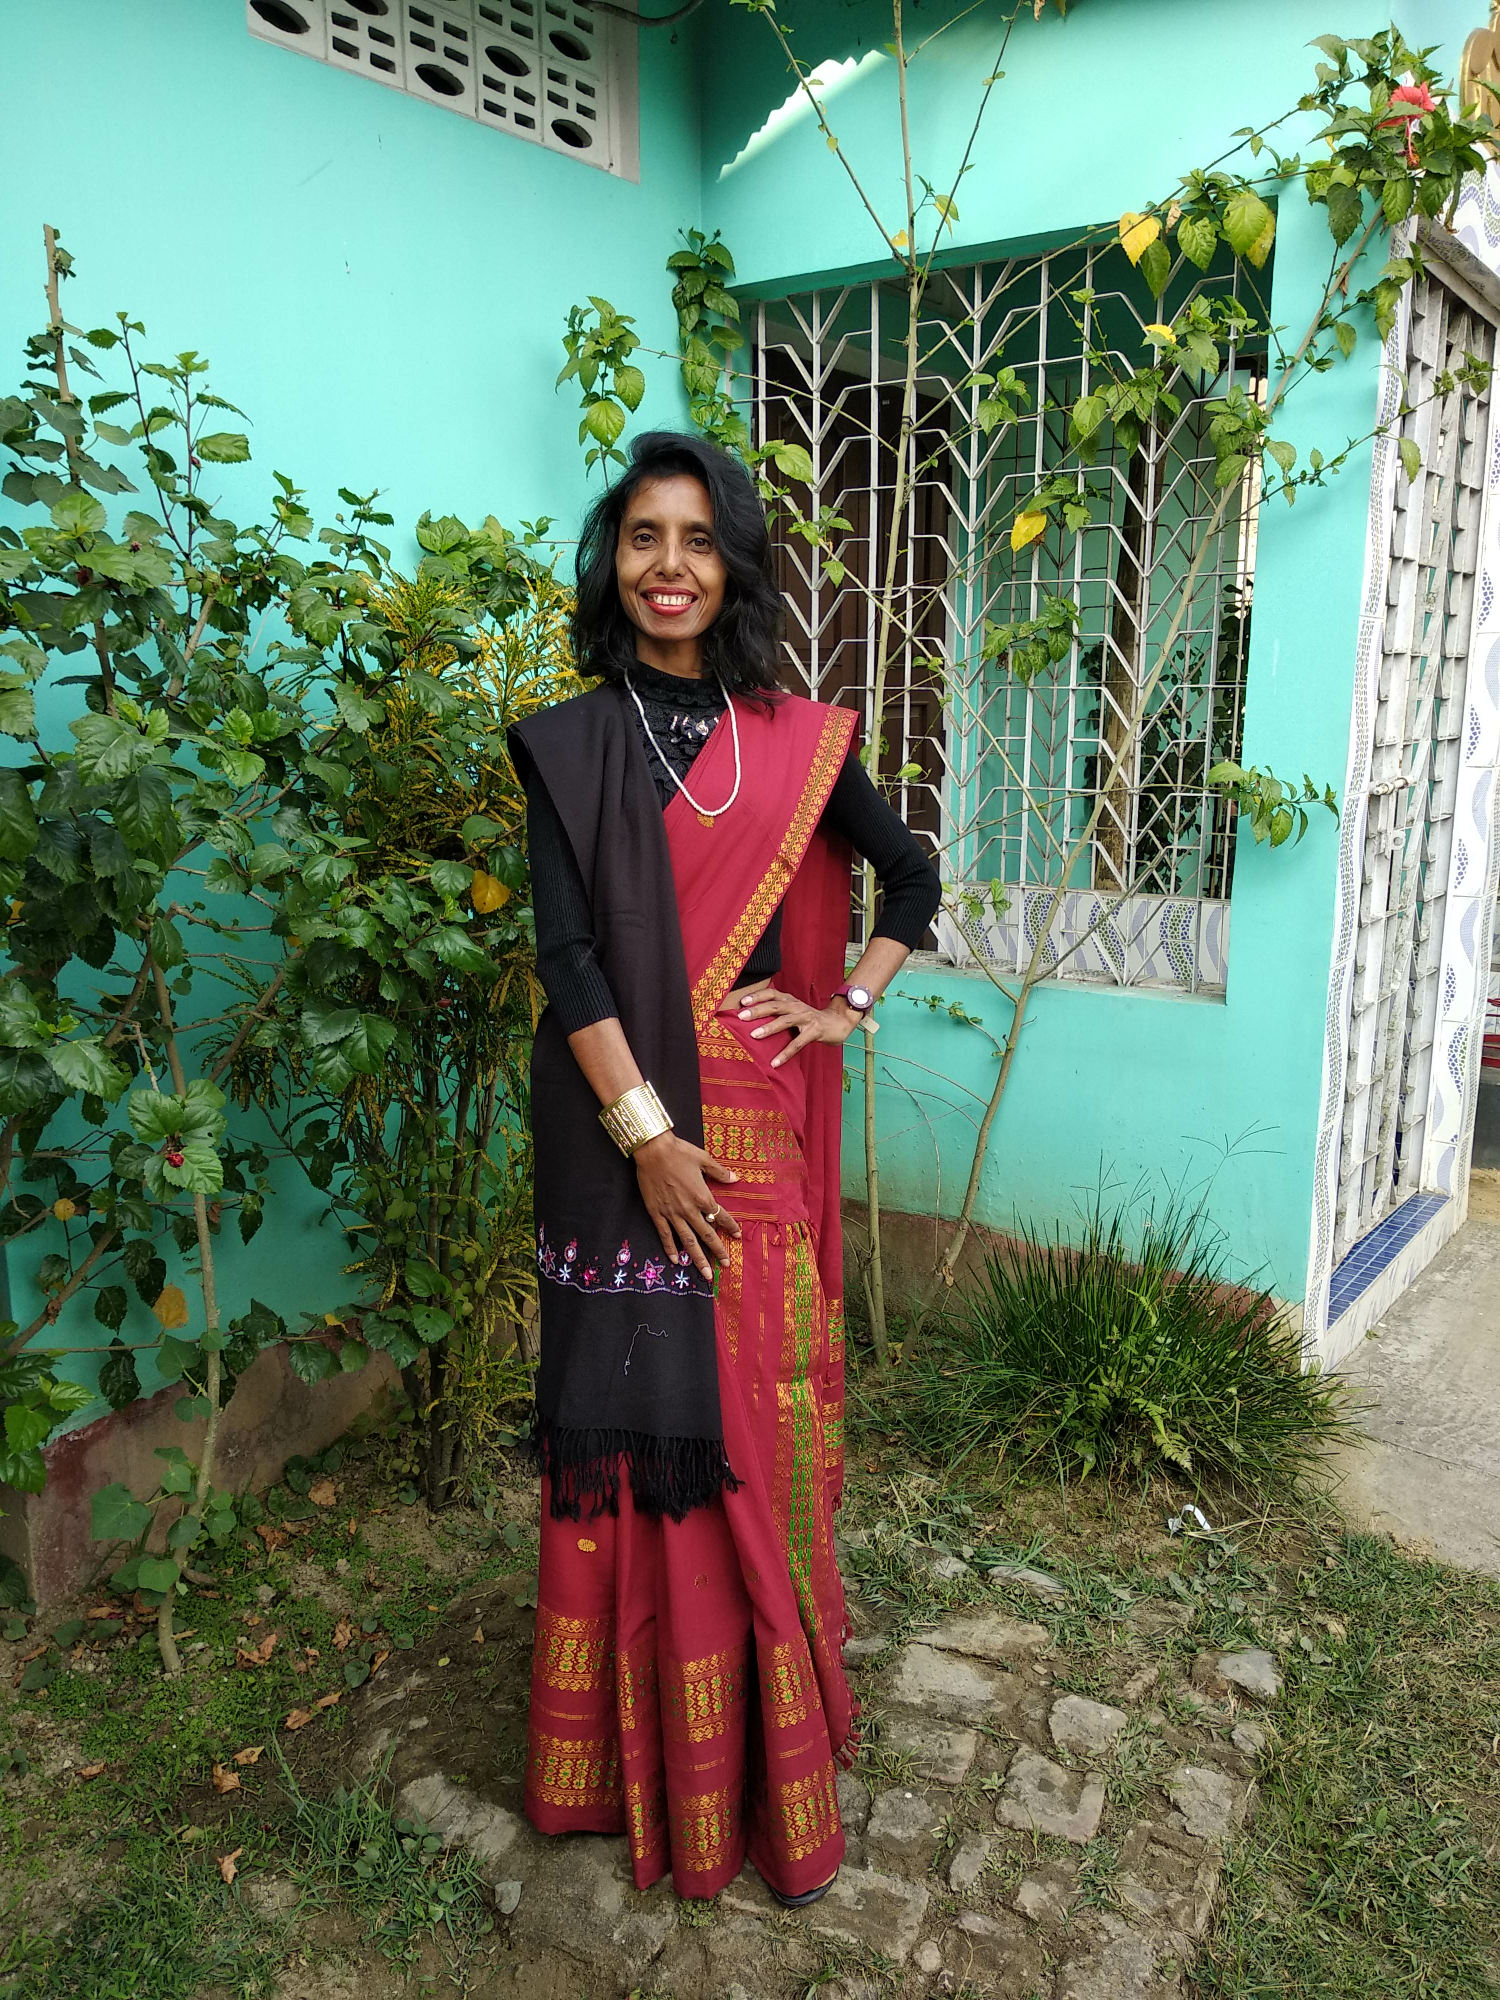 allboutfashion-An ethnic winter party wear fashion